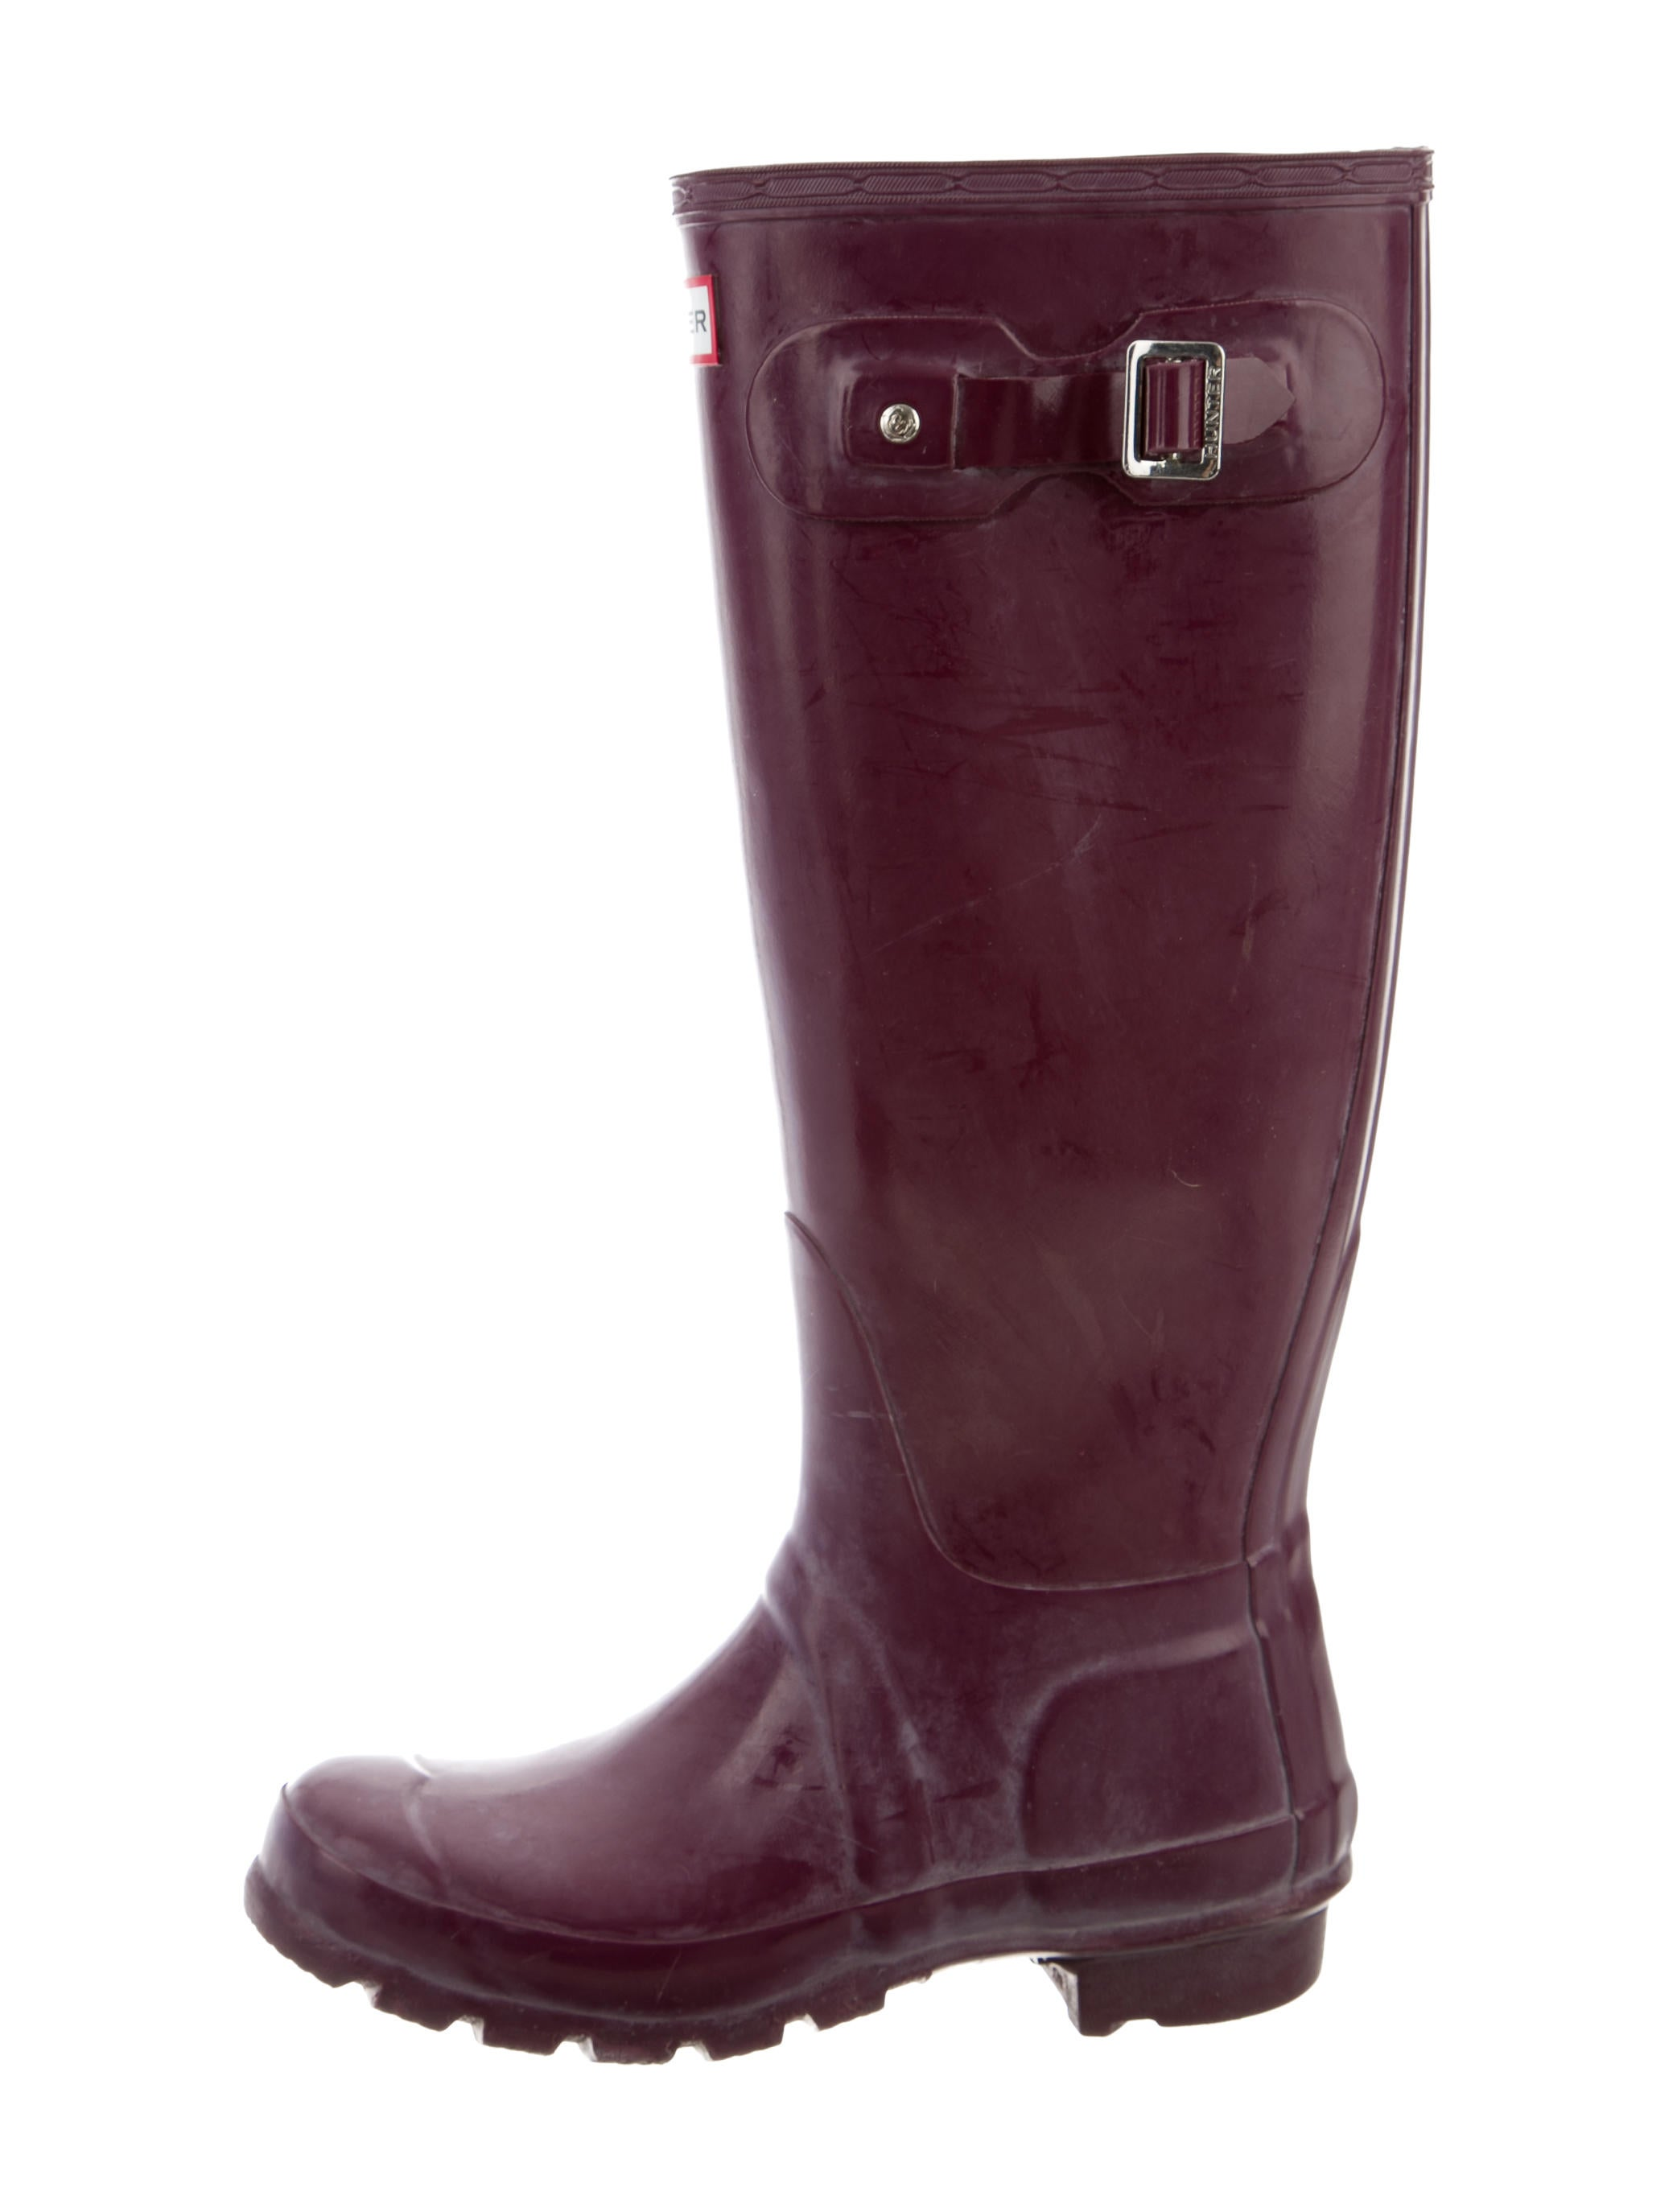 knee high rubber boots shoes wh821118